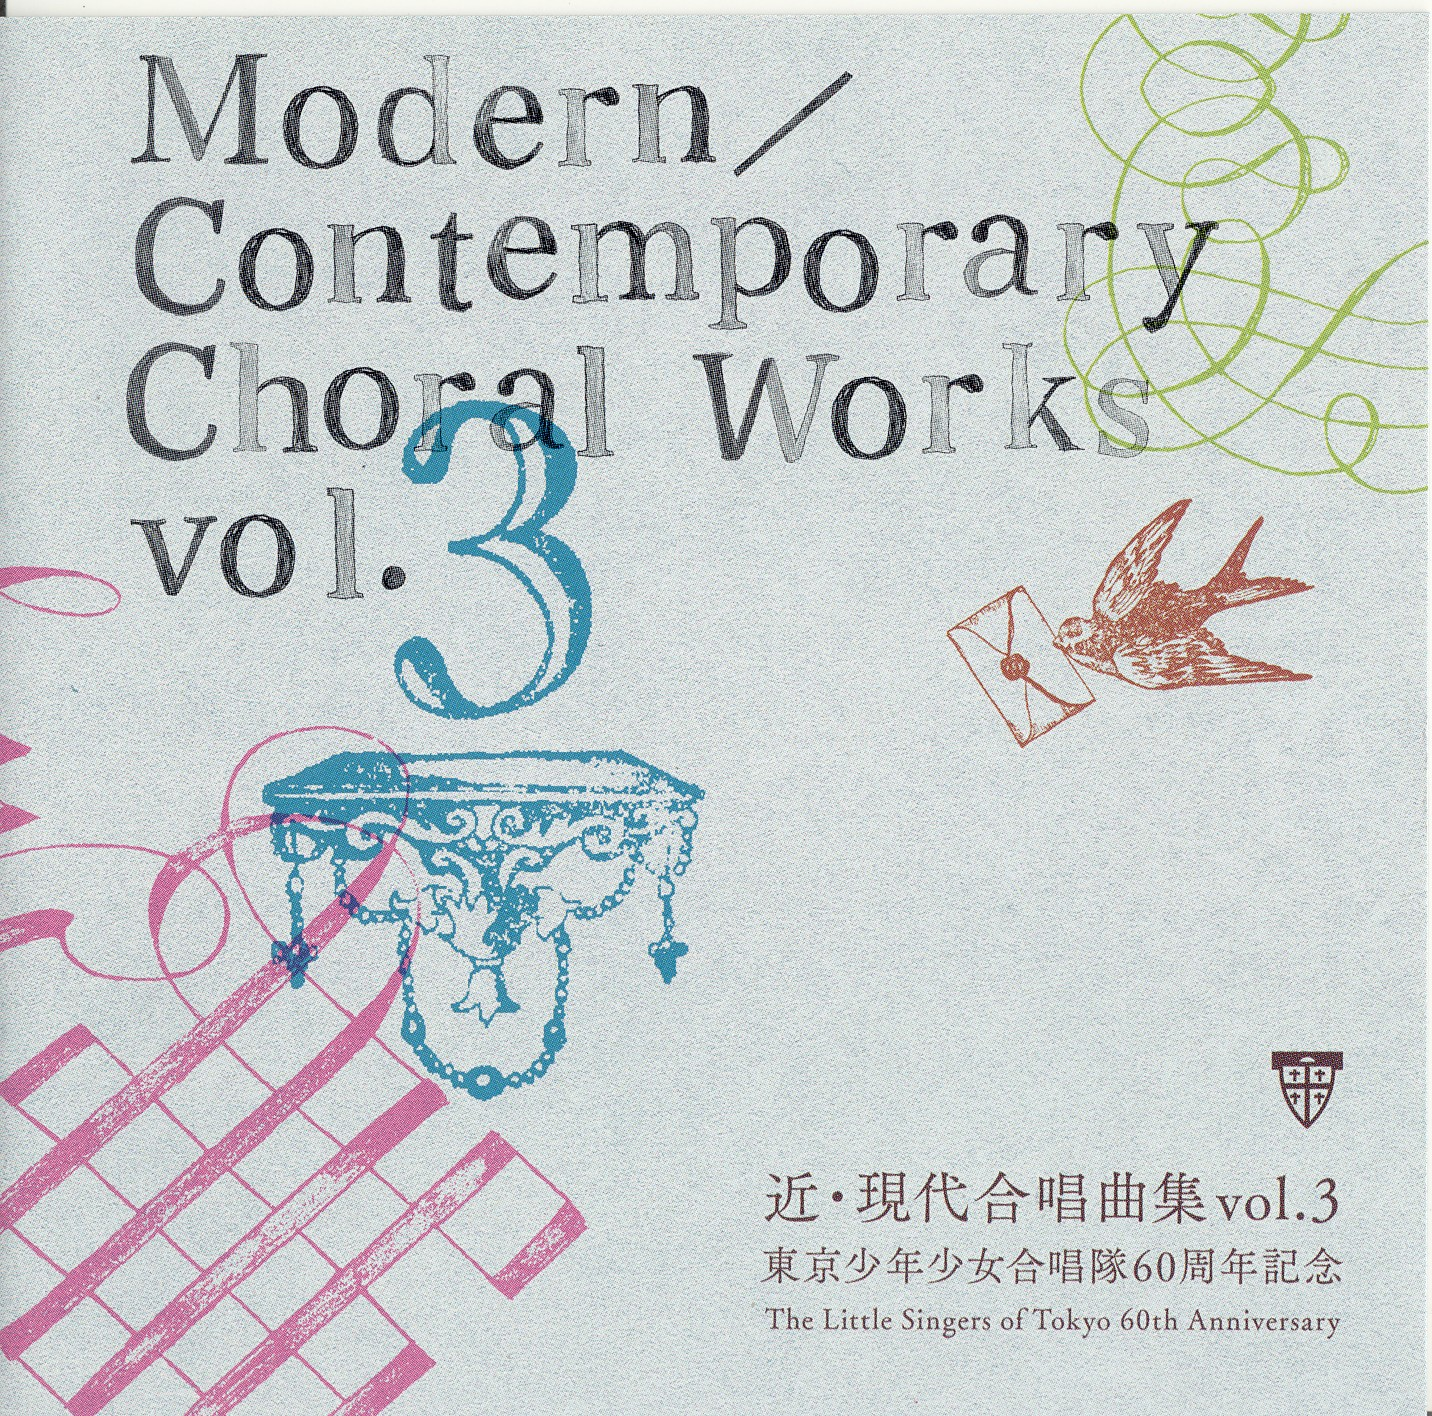 Modern/Contemporary Choral Works Vol.3